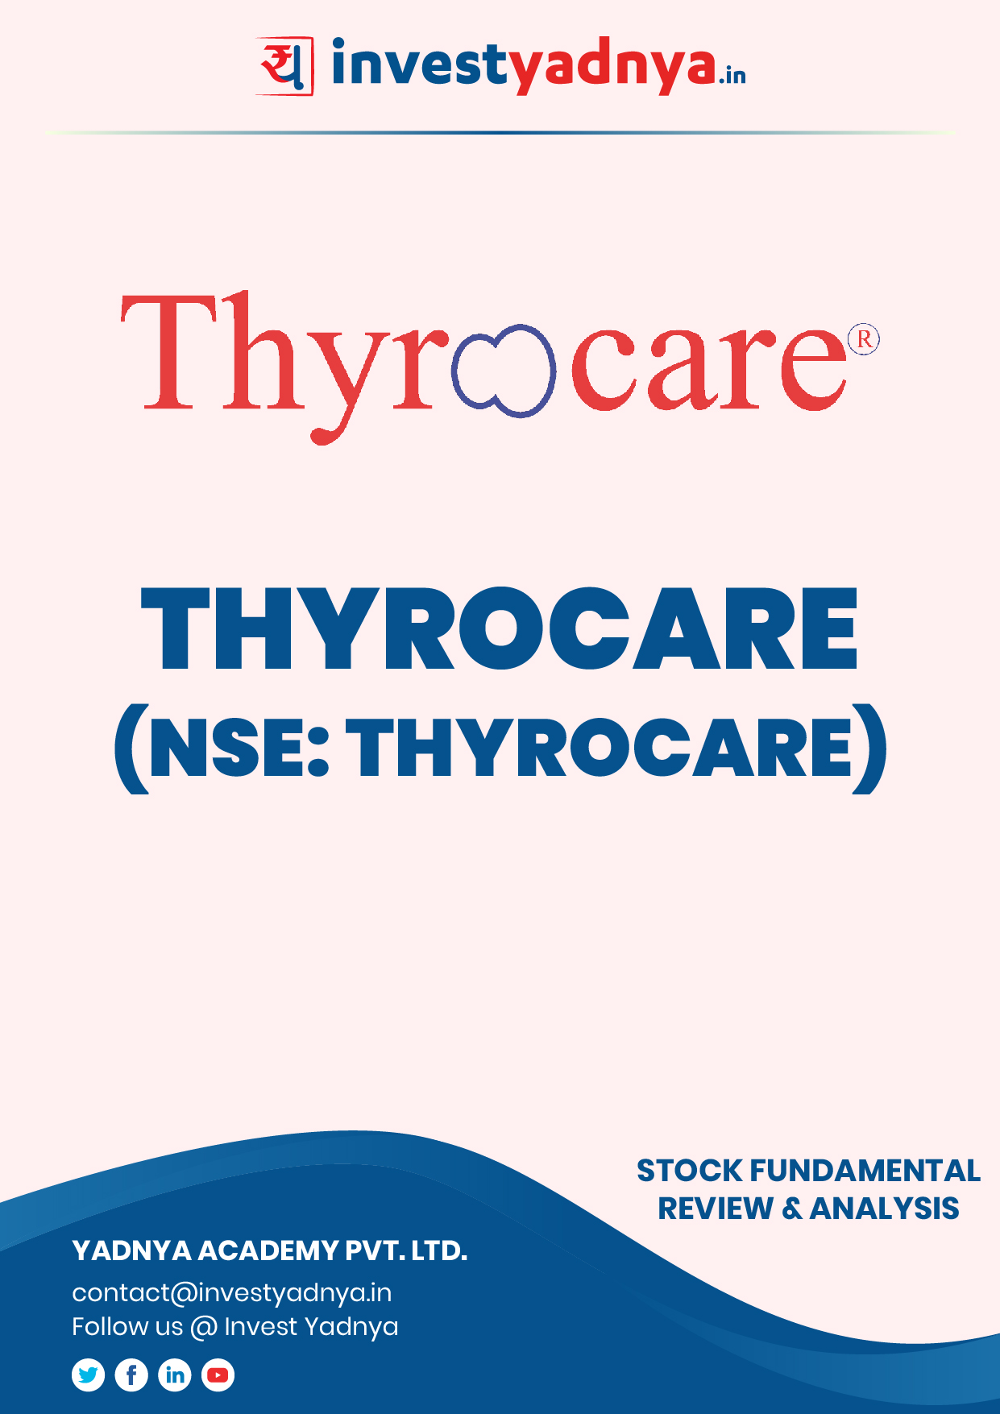 Thyrocare Technologies Ltd. Company/Stock Review & Analysis based on Q3 2019-20 and FY2018-19 data. The book contains Fundamental Analysis of the company considering both Quantitative (Financial) and Qualitative Parameters.